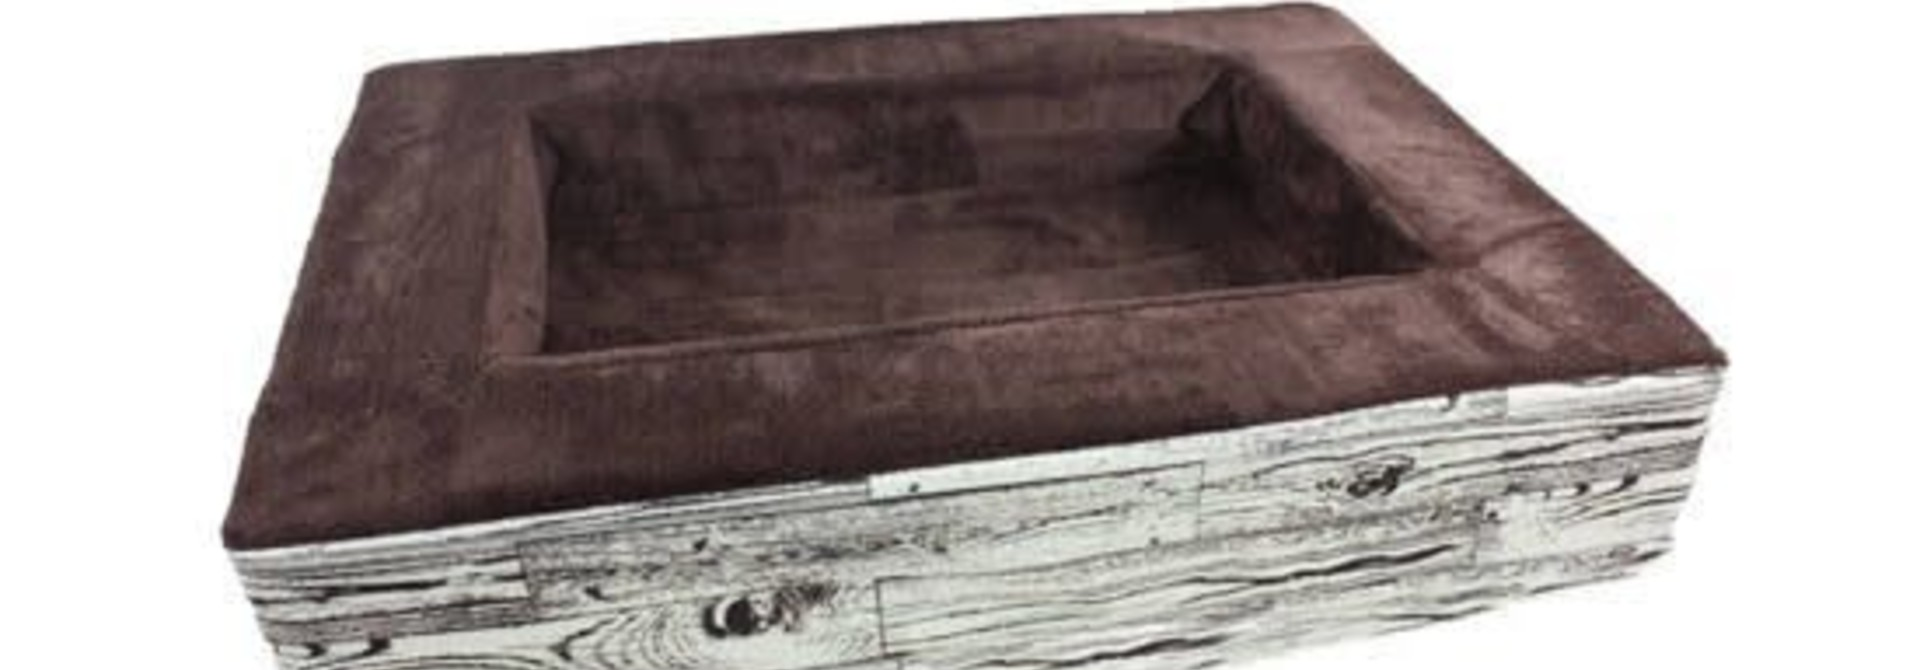 Contour Bed Wood Small 27x20